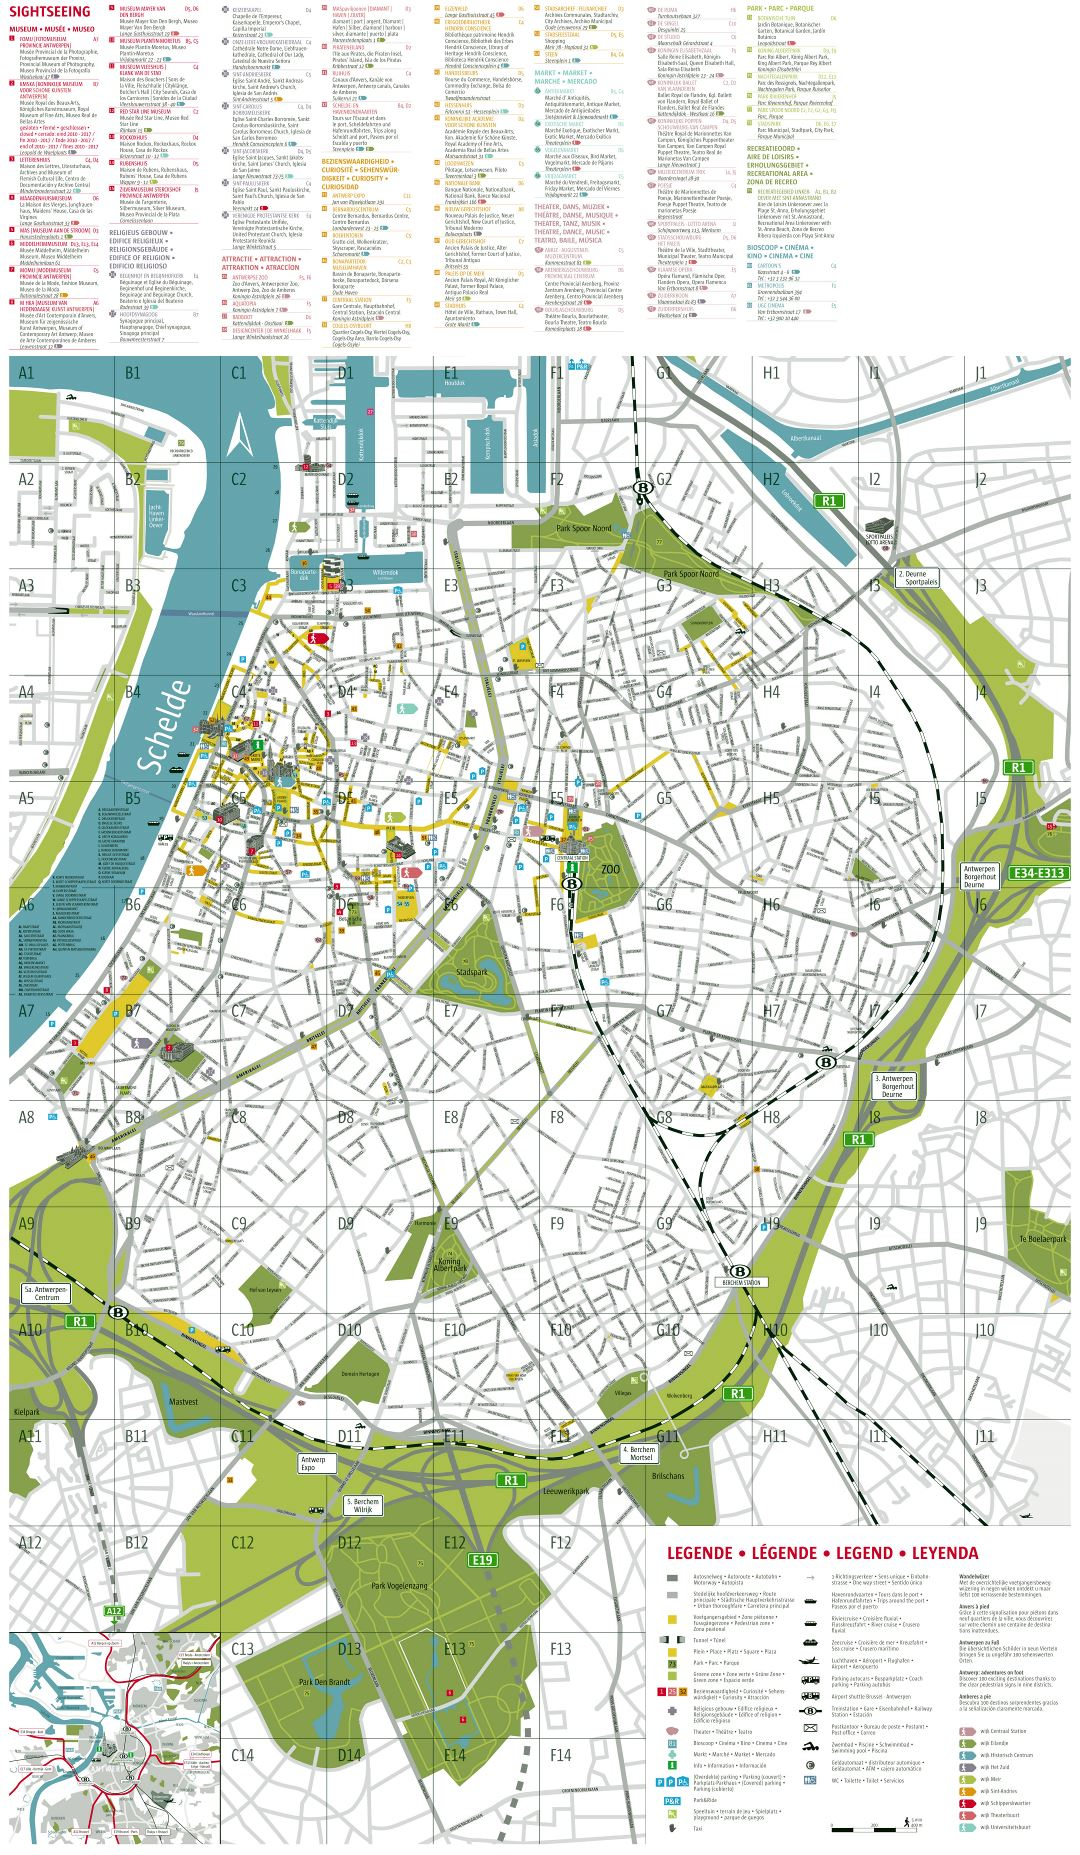 Large scale detailed tourist map of Antwerpen city